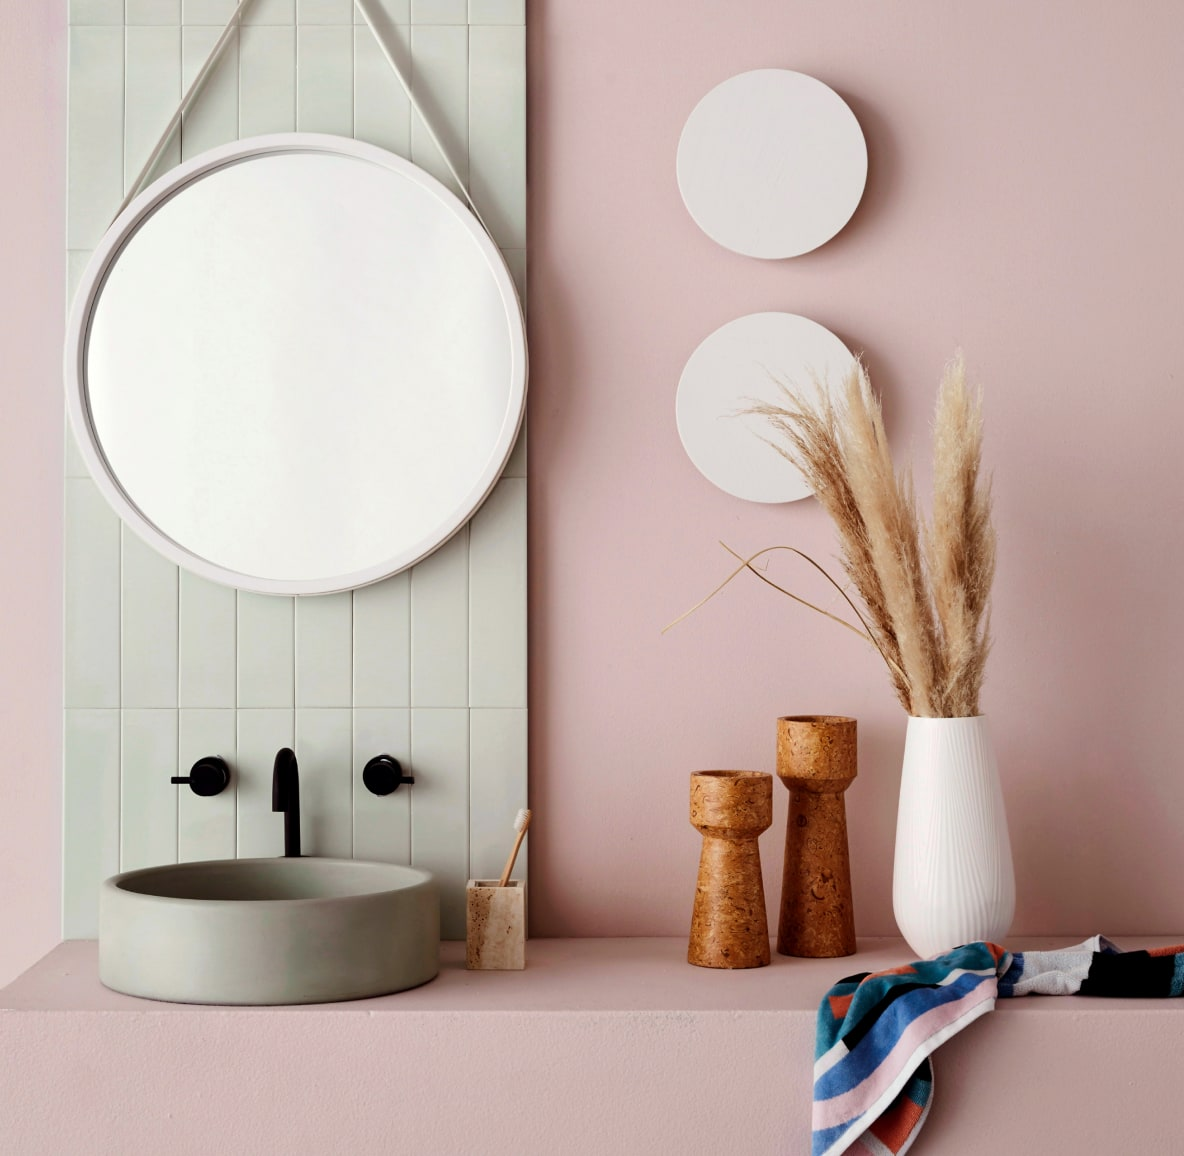 Modern bathroom sink with a mirror and ceramic vase